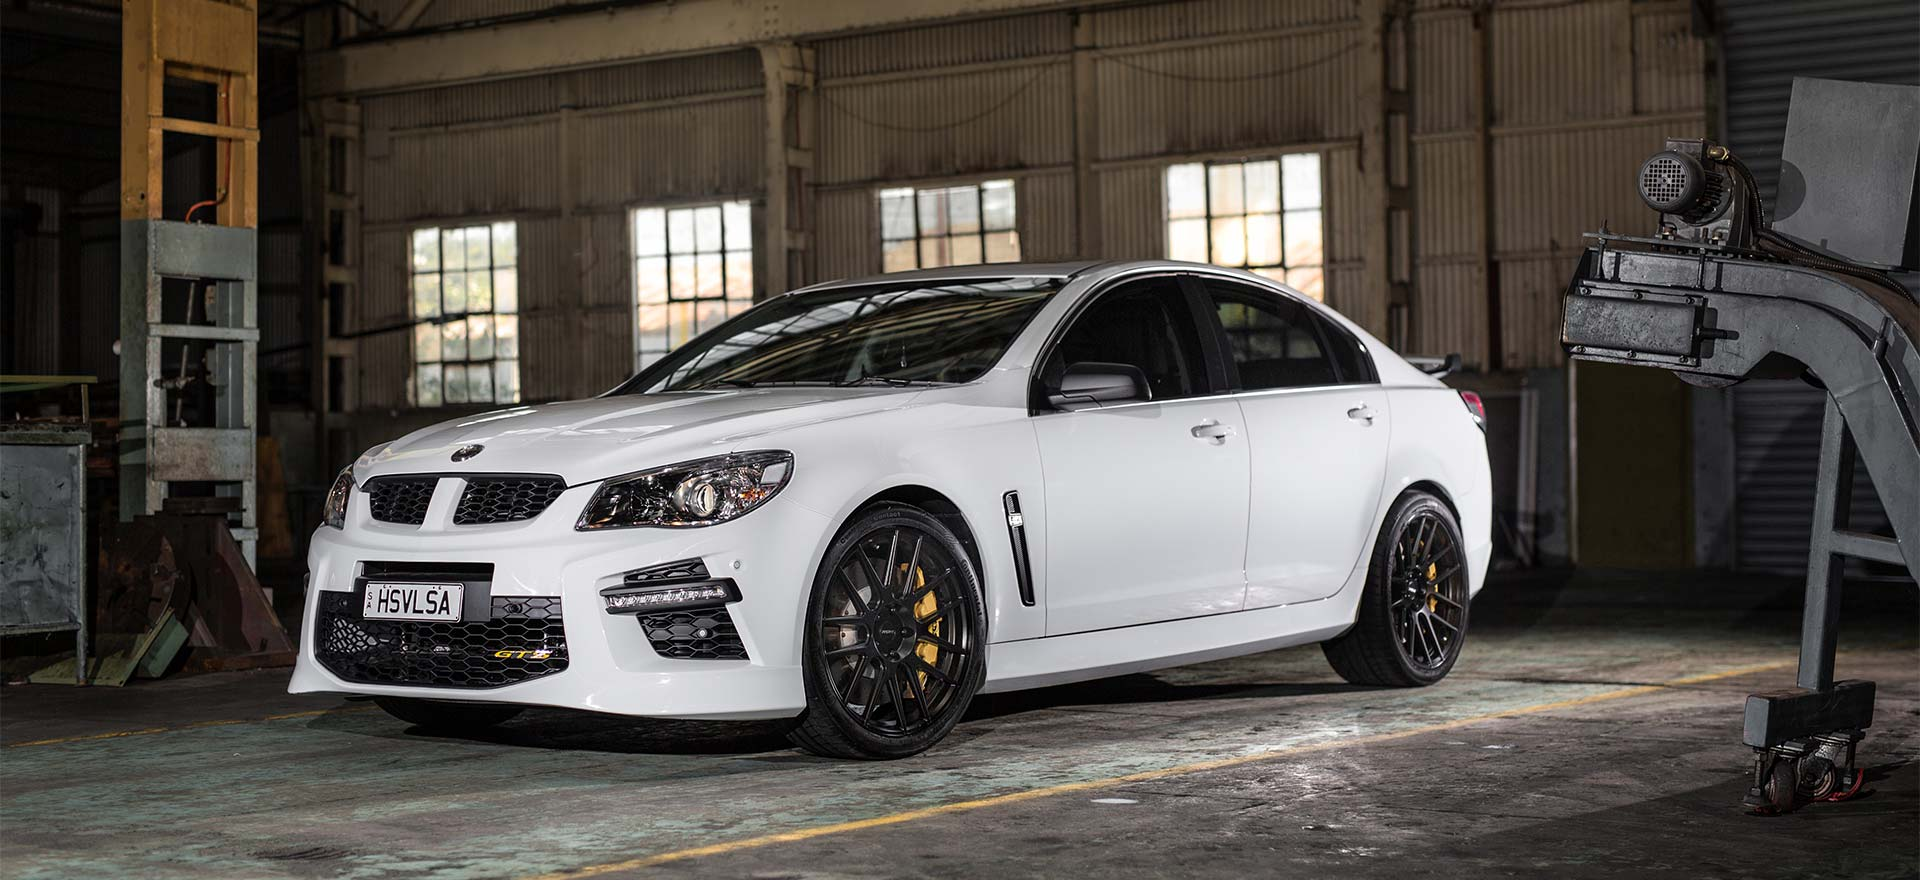 RF1 Flow forged rims on HSV GTS